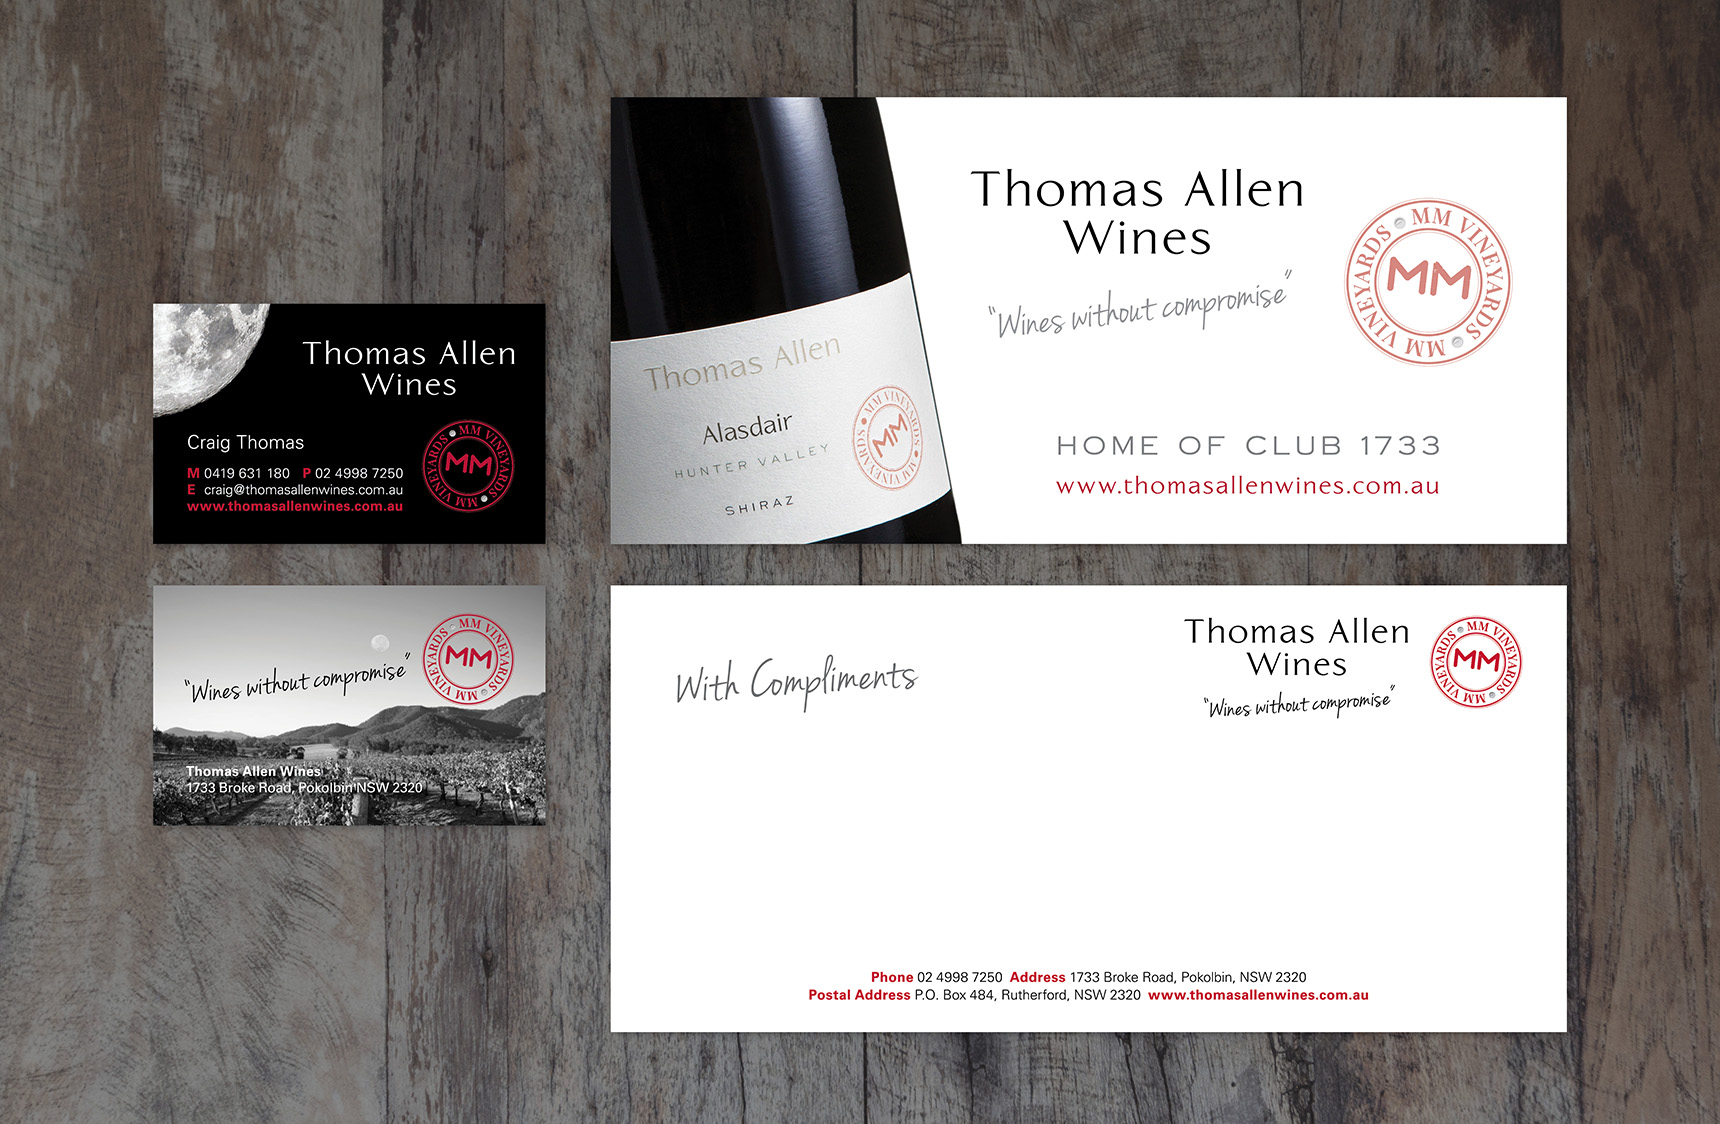 mjk_thomas-allen-wines_01